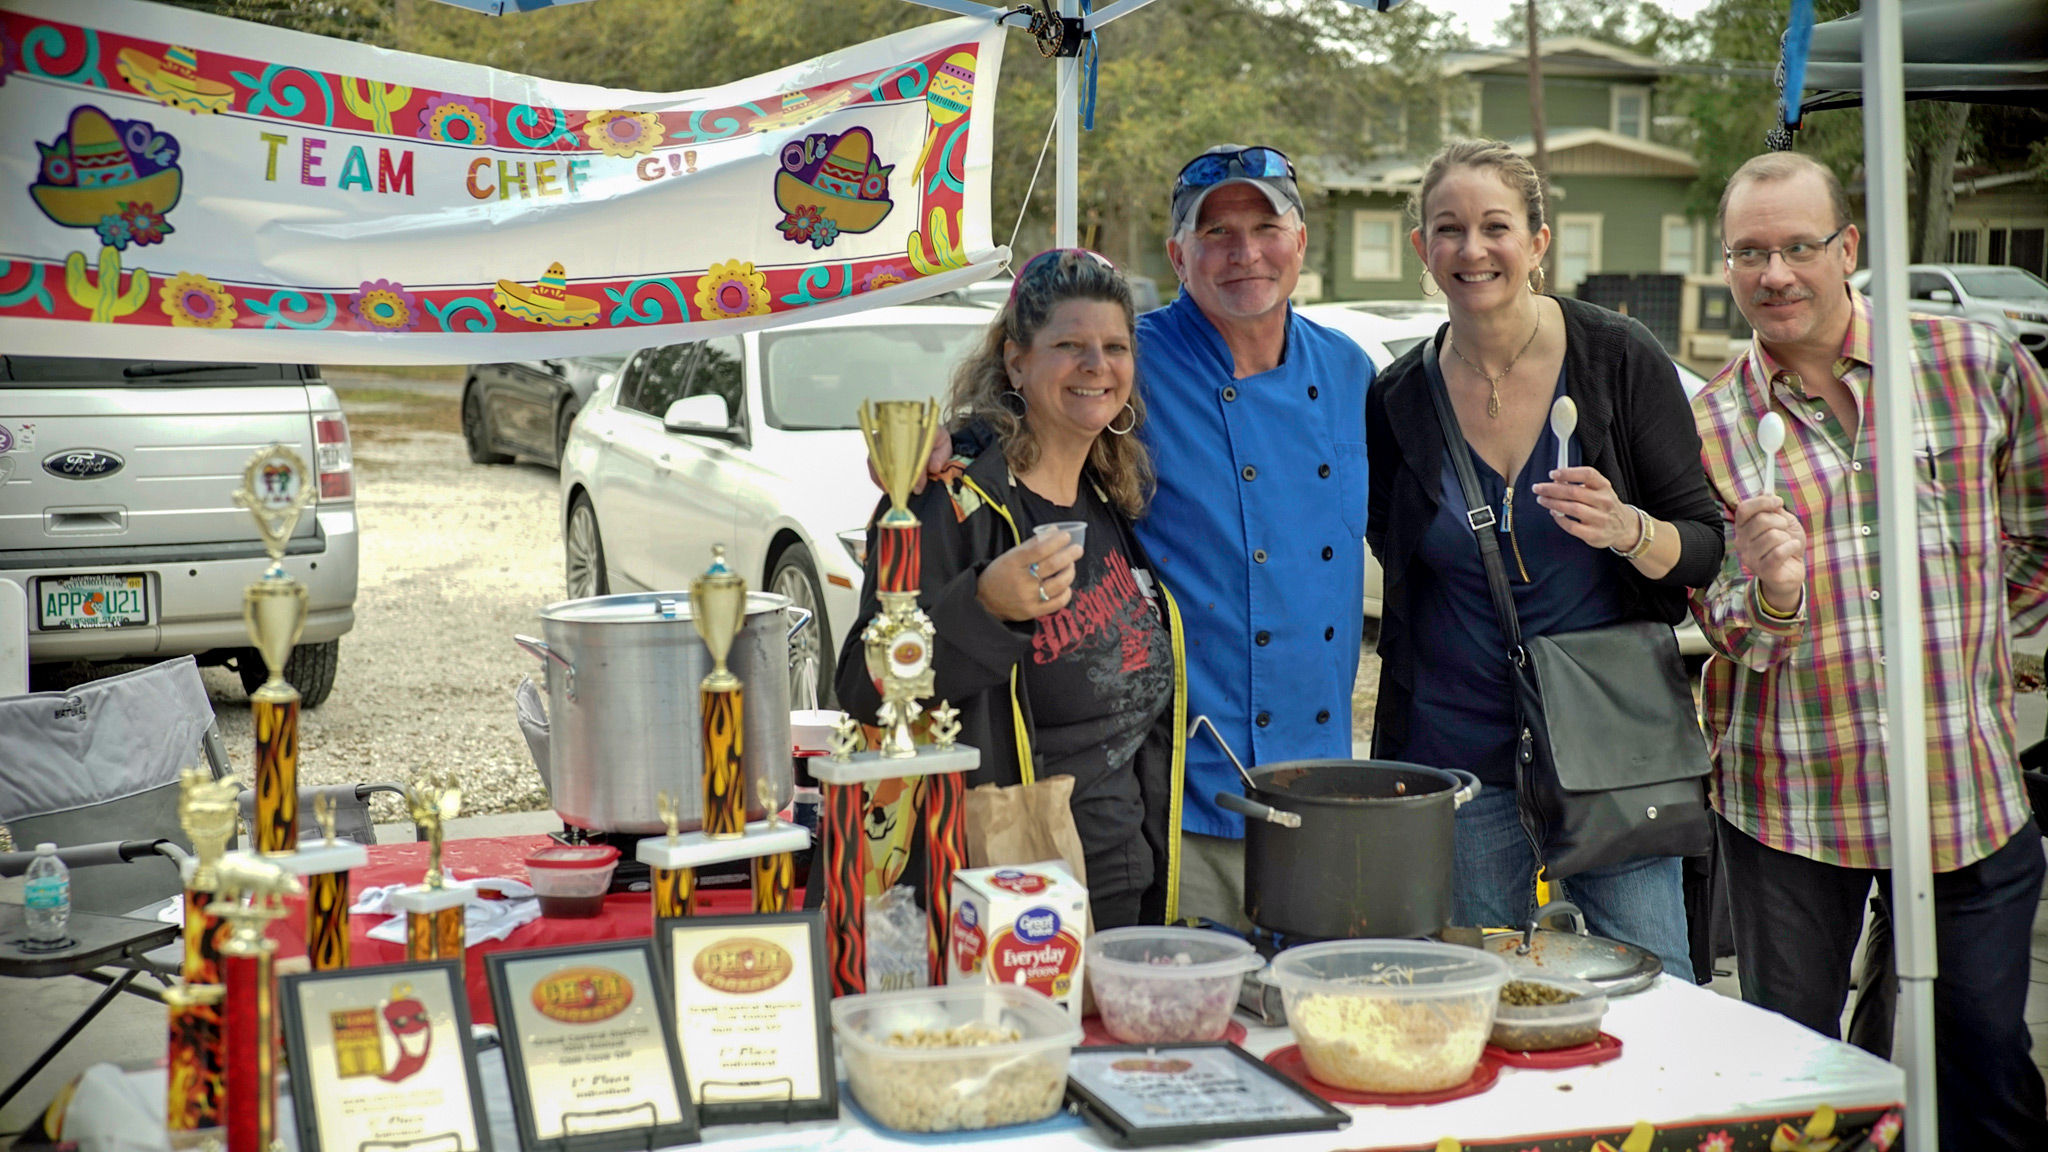 Grand Central District's 12th Annual Chili Cook-Off